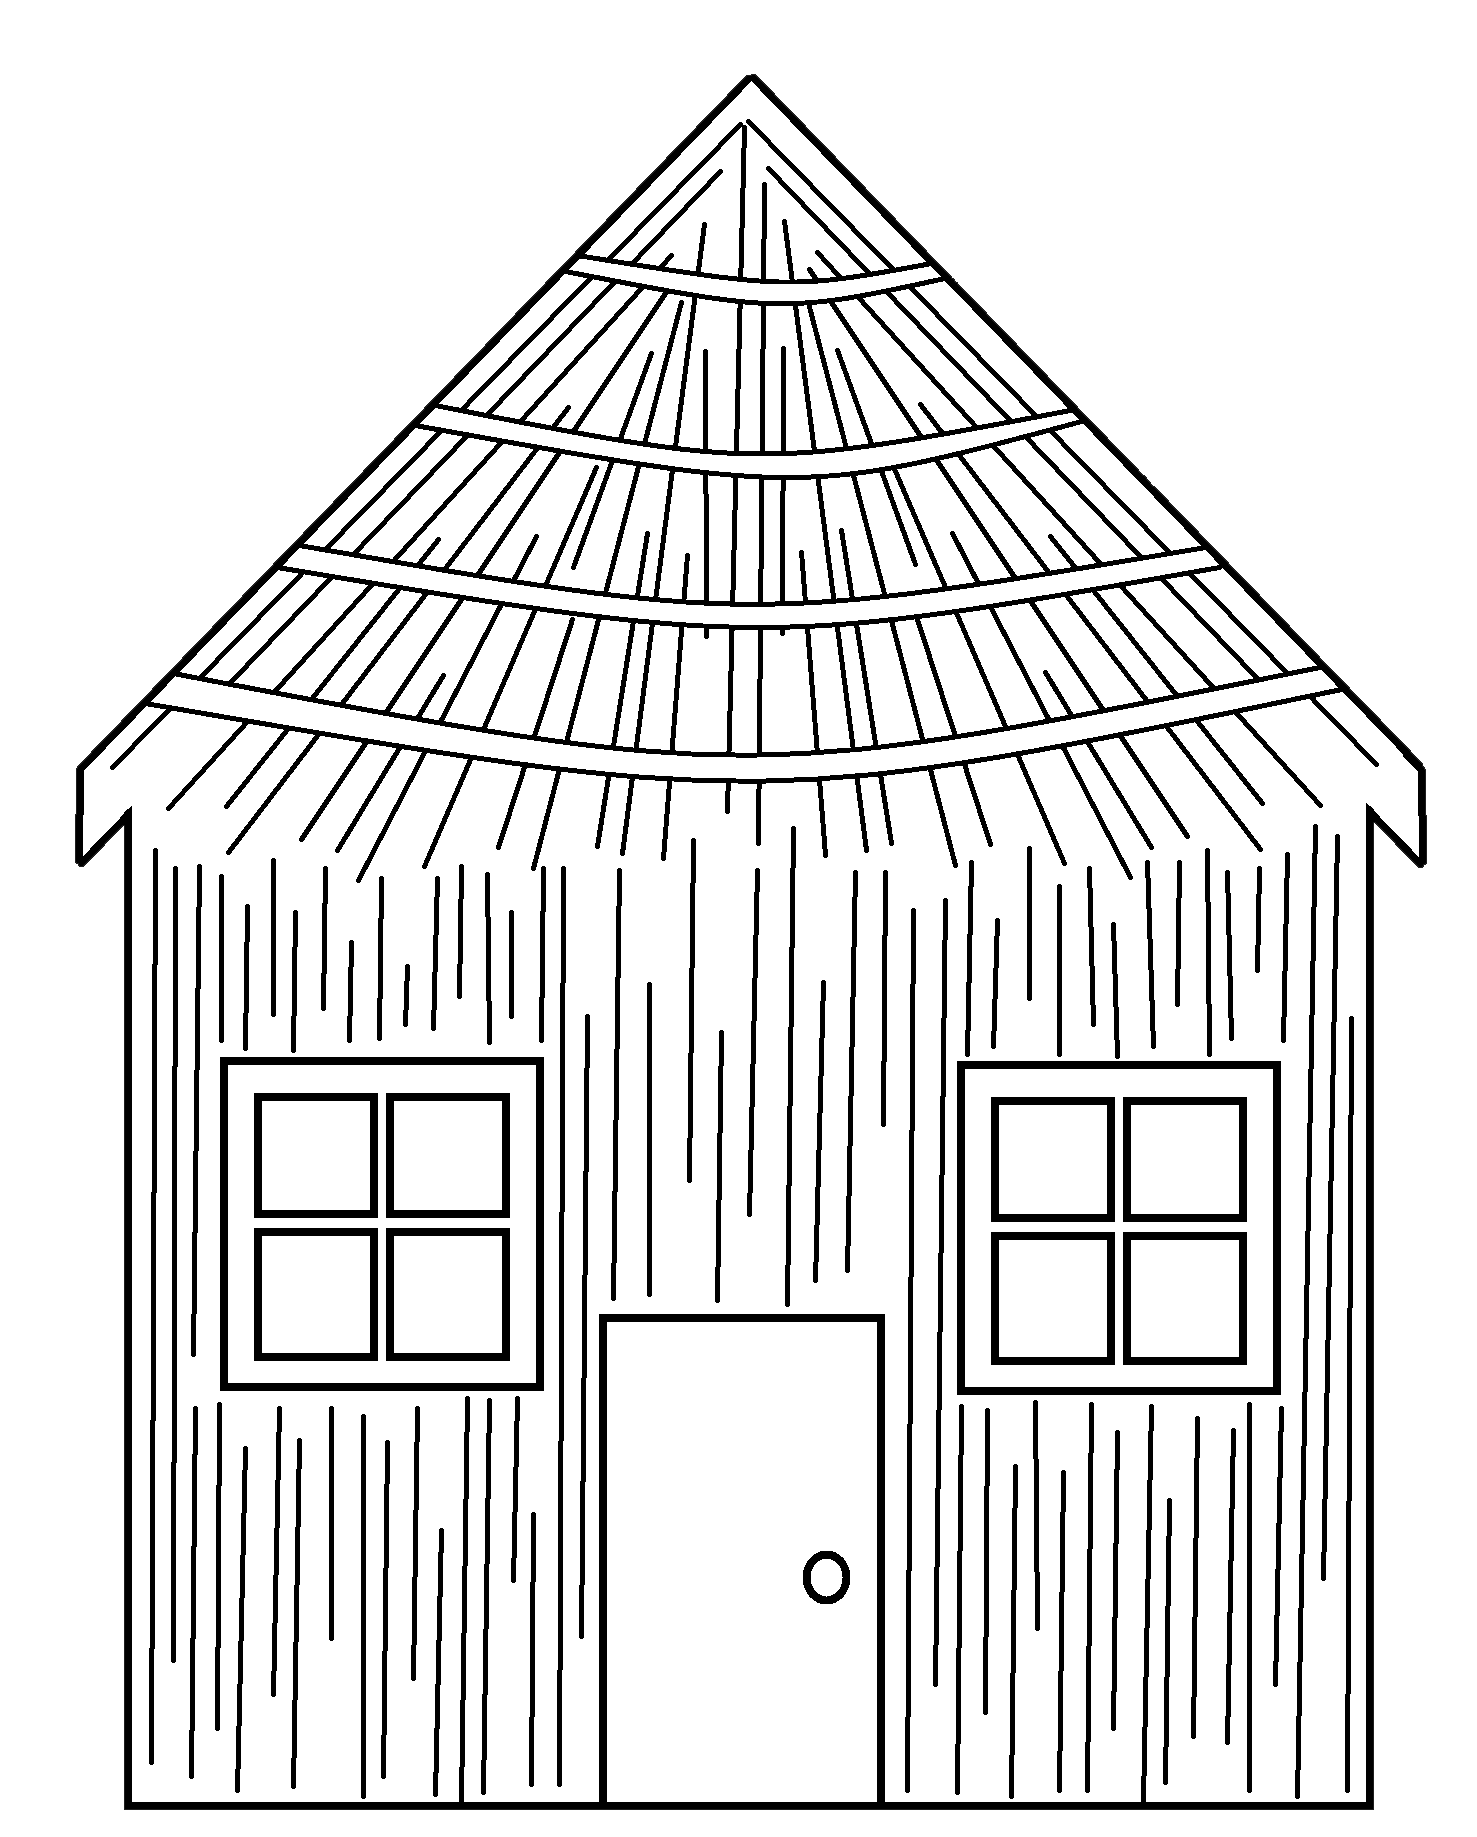 Small house clipart black and white clipart transparent download Houses Clipart Group (64+) clipart transparent download